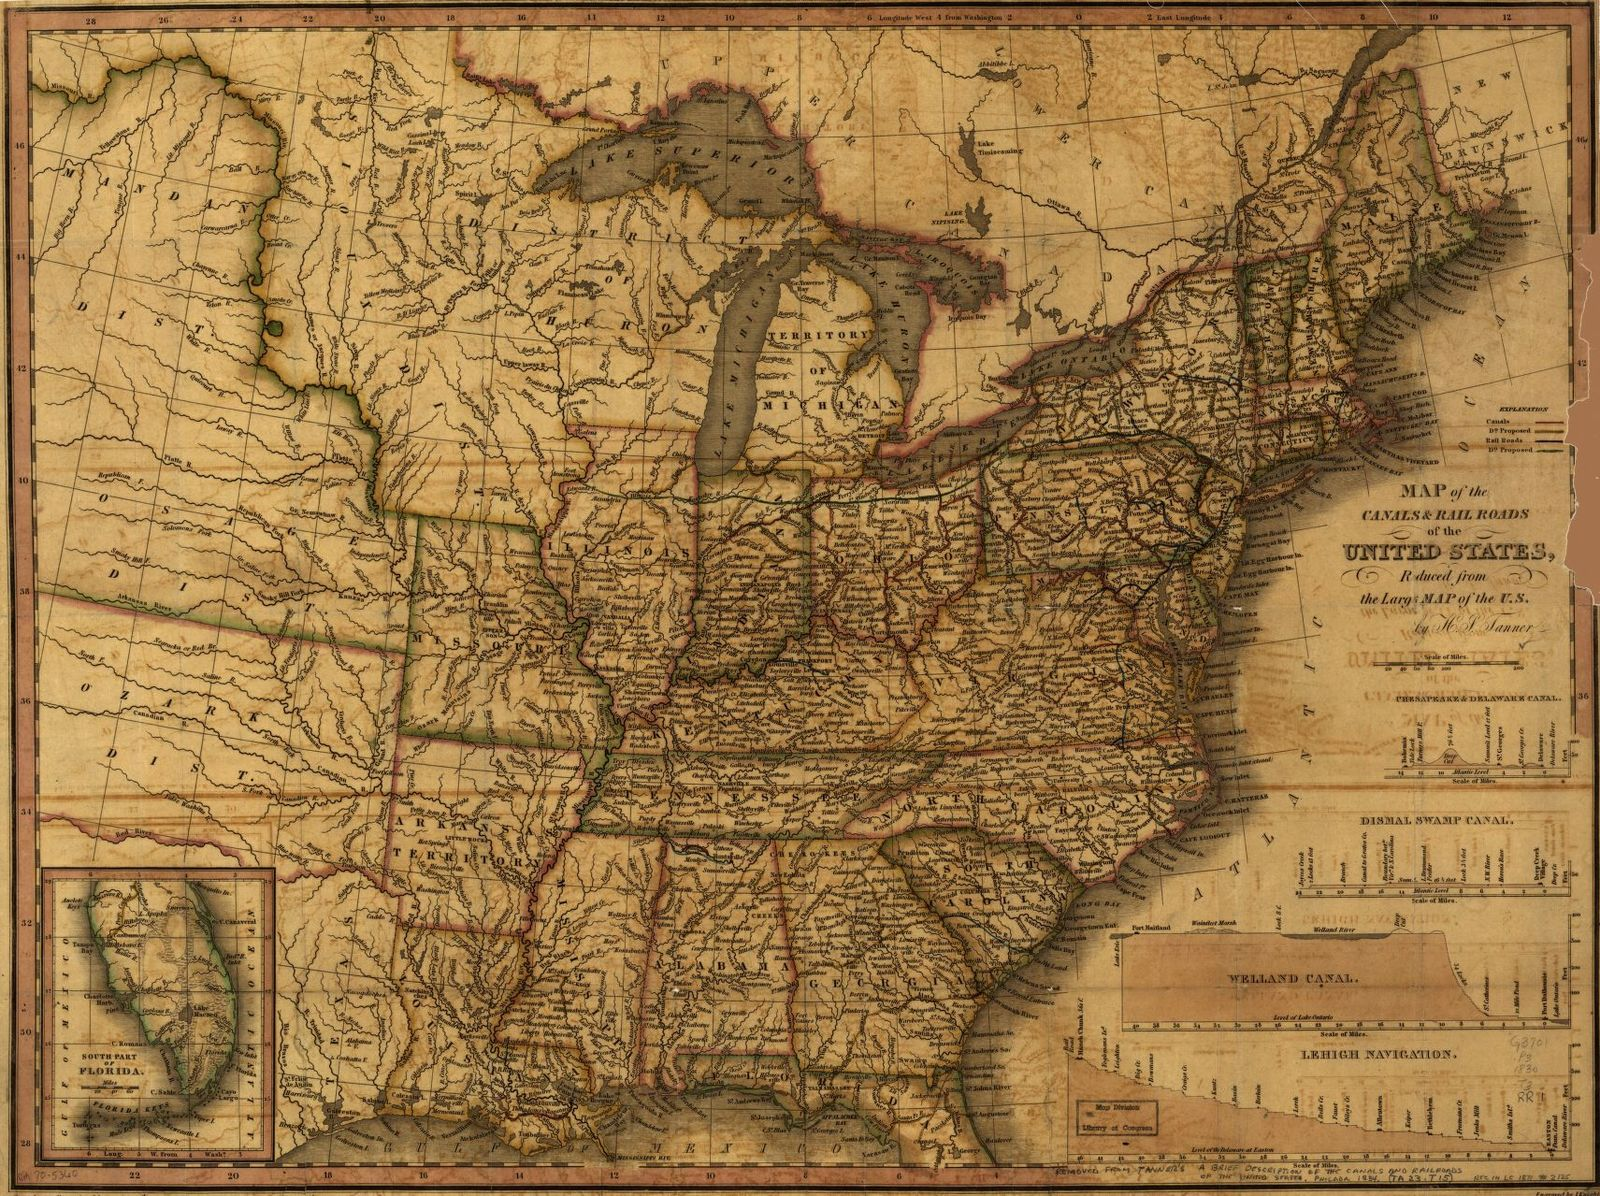 Map of the canals & rail roads of the United States reduced from the large map of the U.S.